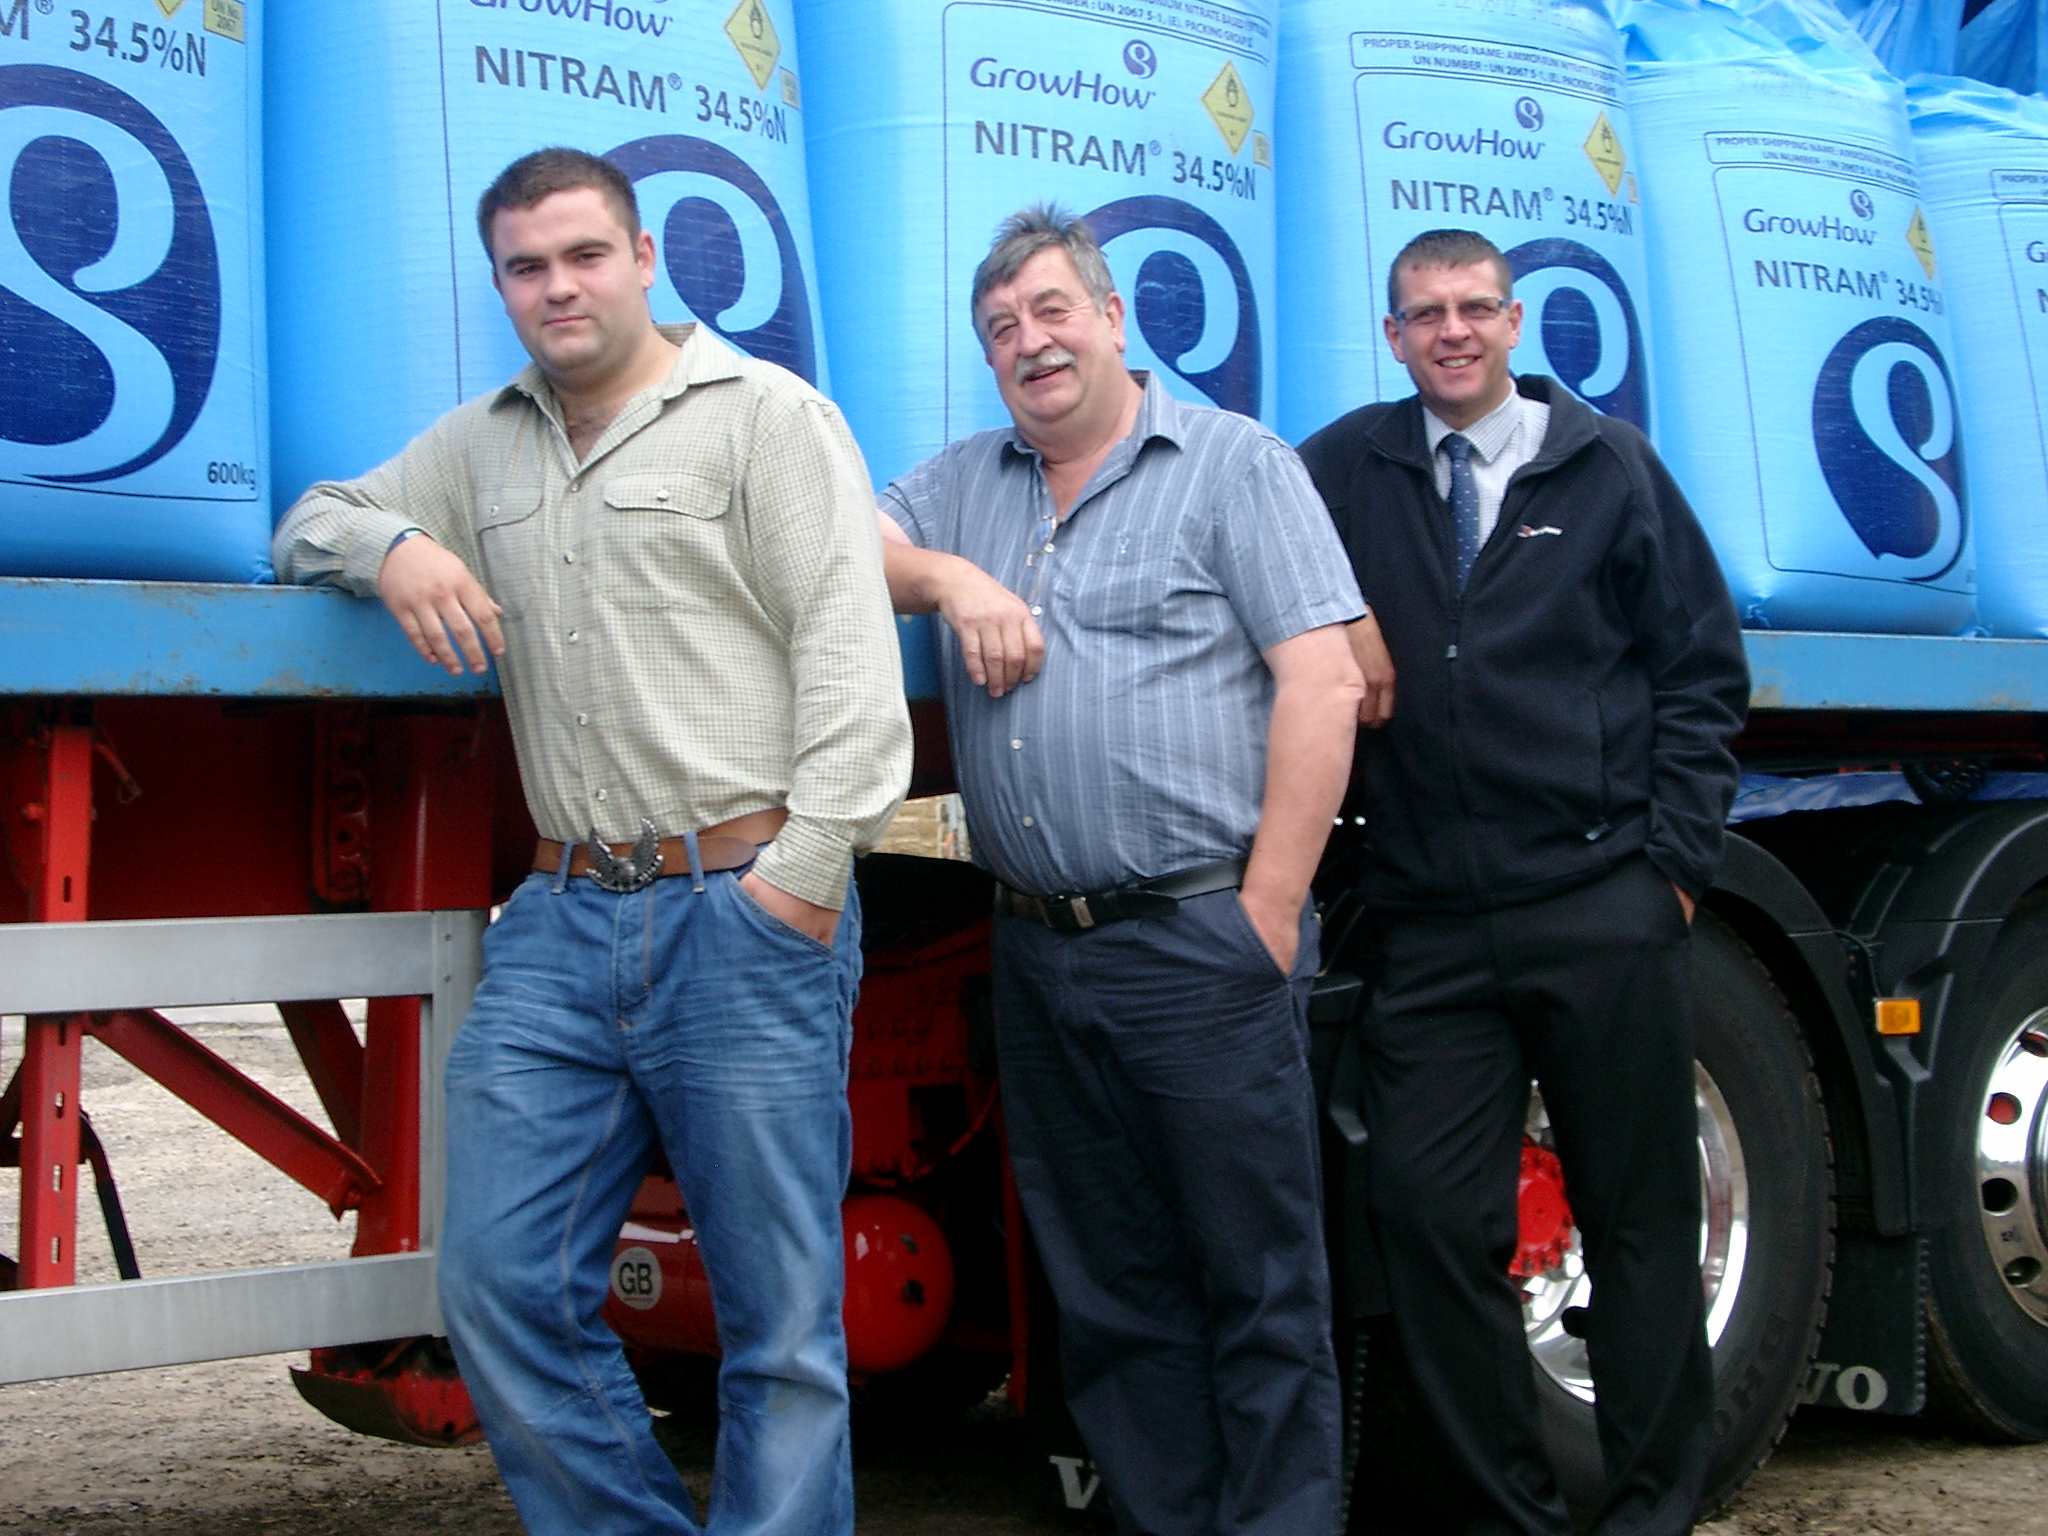 1.	Left to right, winner Robert Wheelhouse with his father John Wheelhouse and Dave Towse GrowHow Business Adviser.